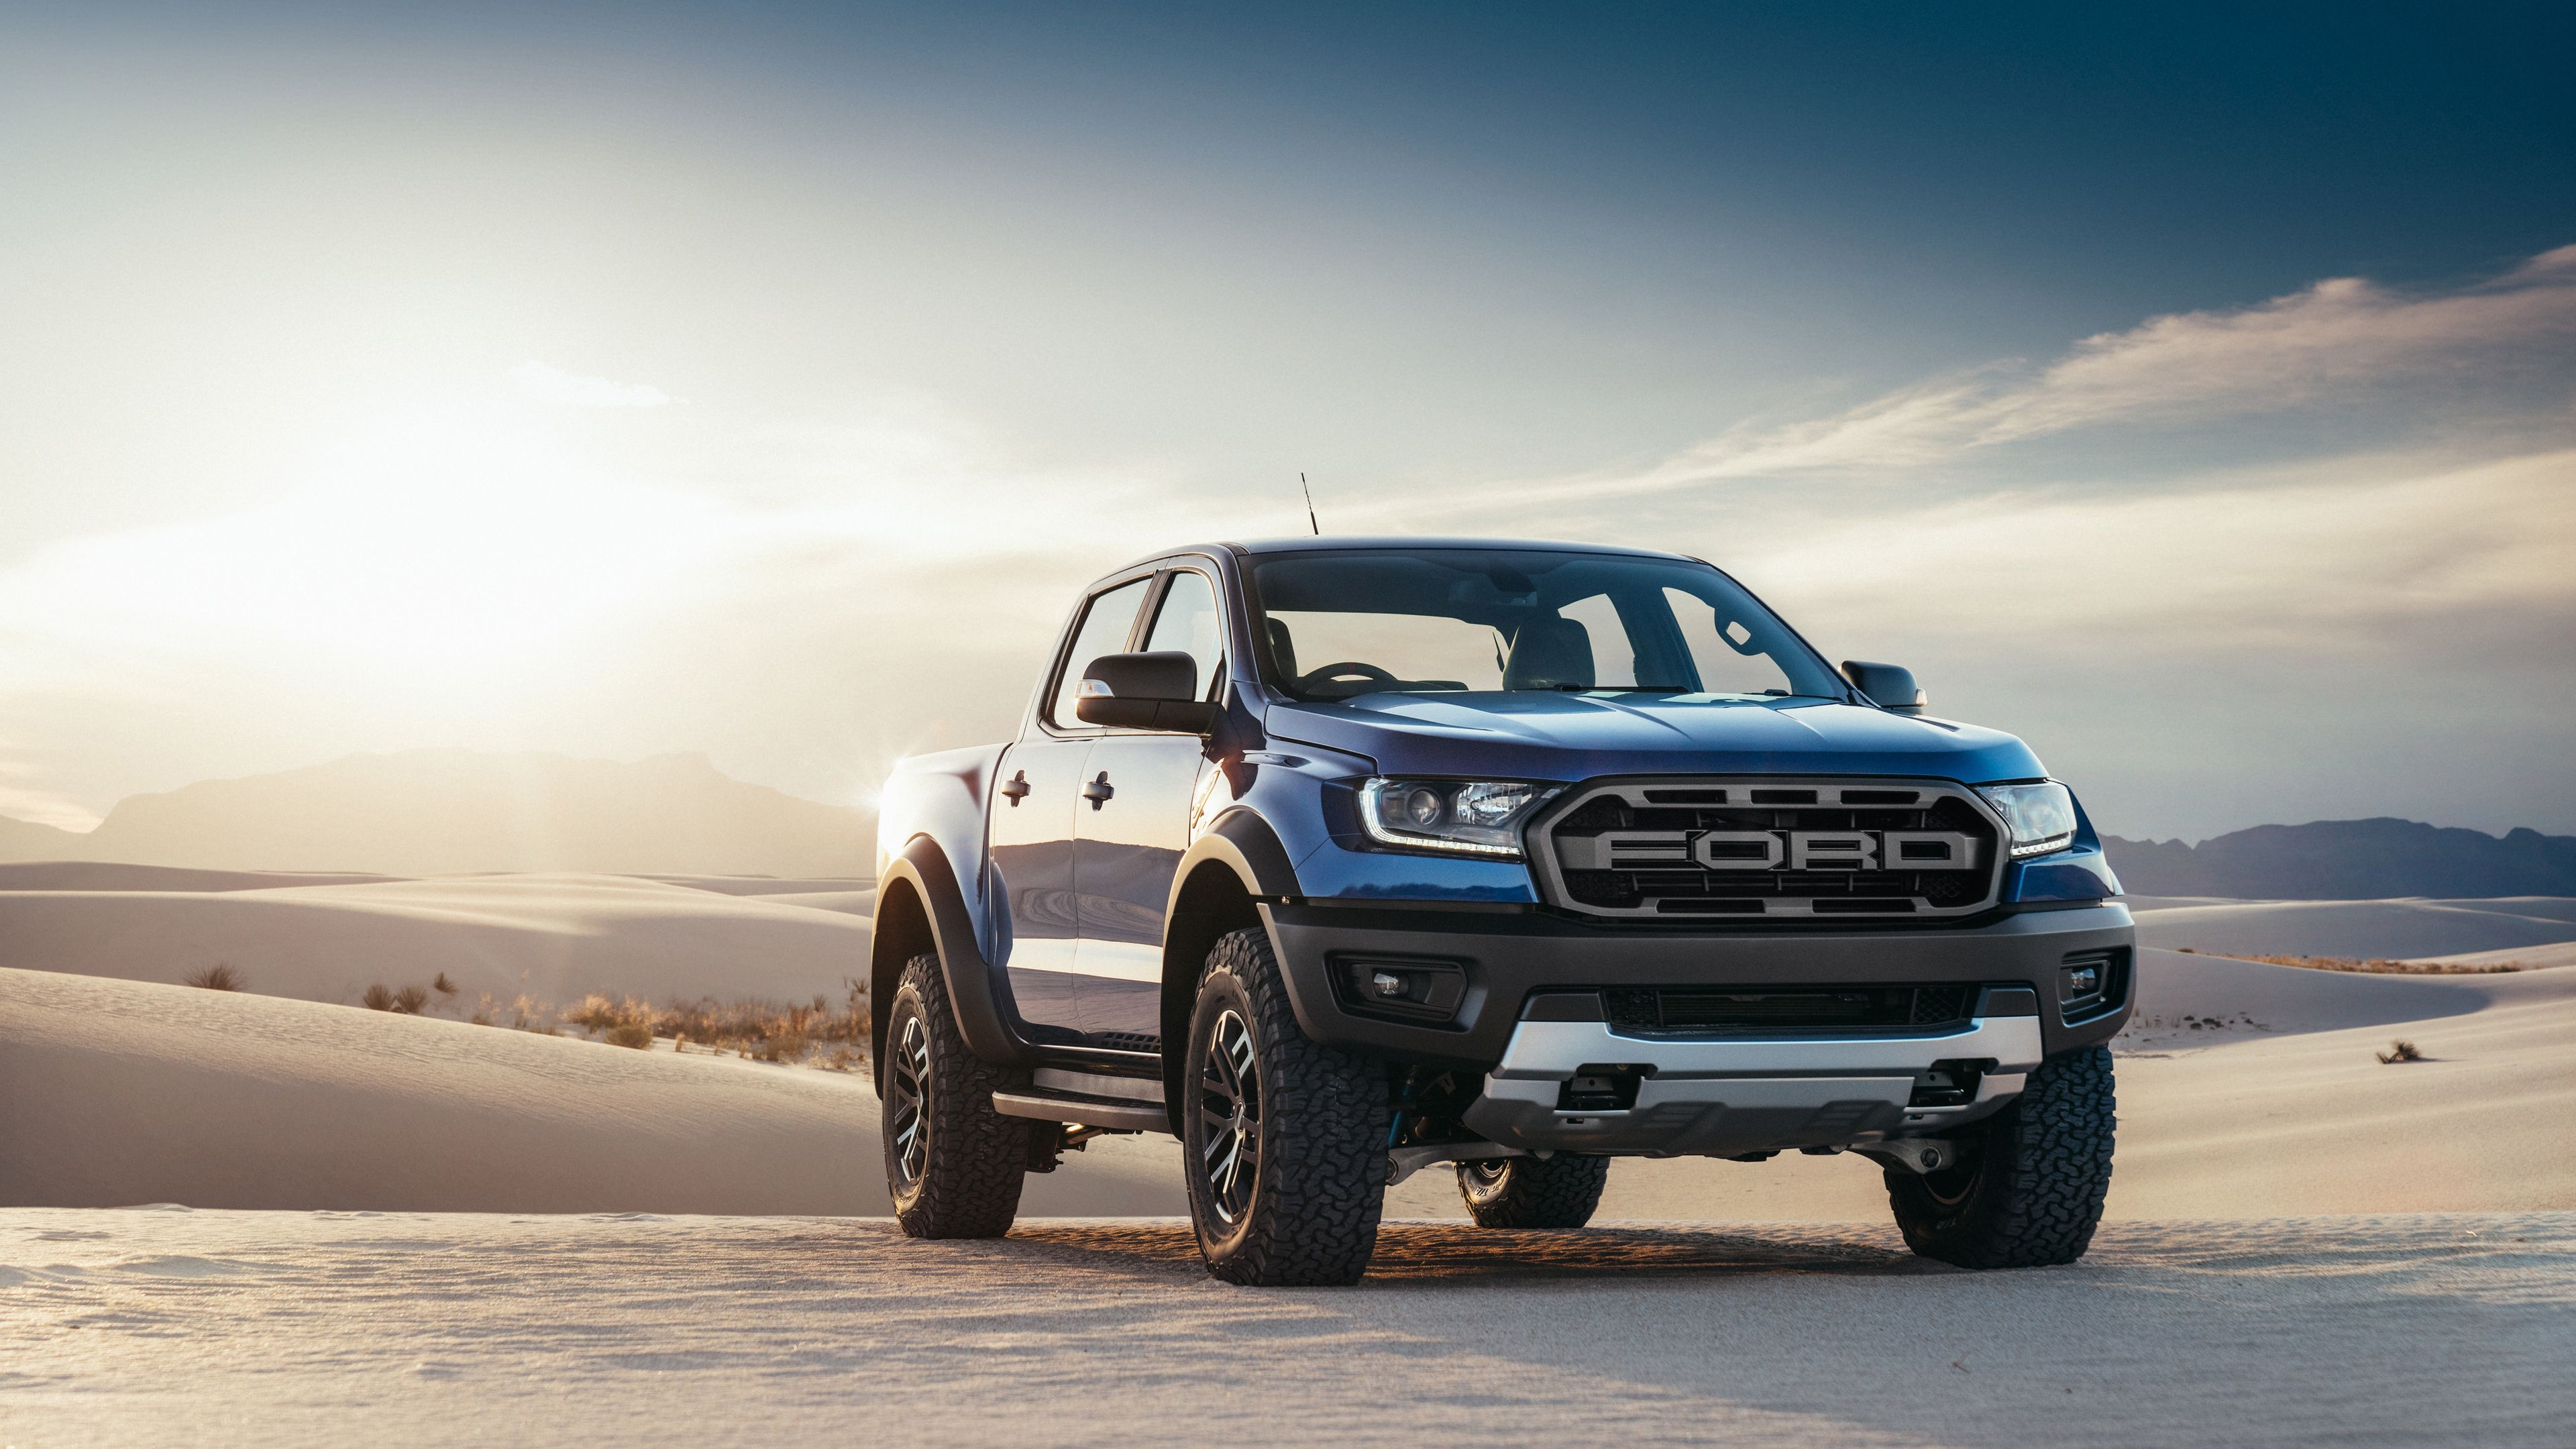 2019 Ford Ranger Raptor Truck Wallpapers Hd Wallpapers Ford Wallpapers Ford Raptor Wallpapers Ford Ranger Raptor Wallpapers Cars Wal Ford Ranger Ford O To